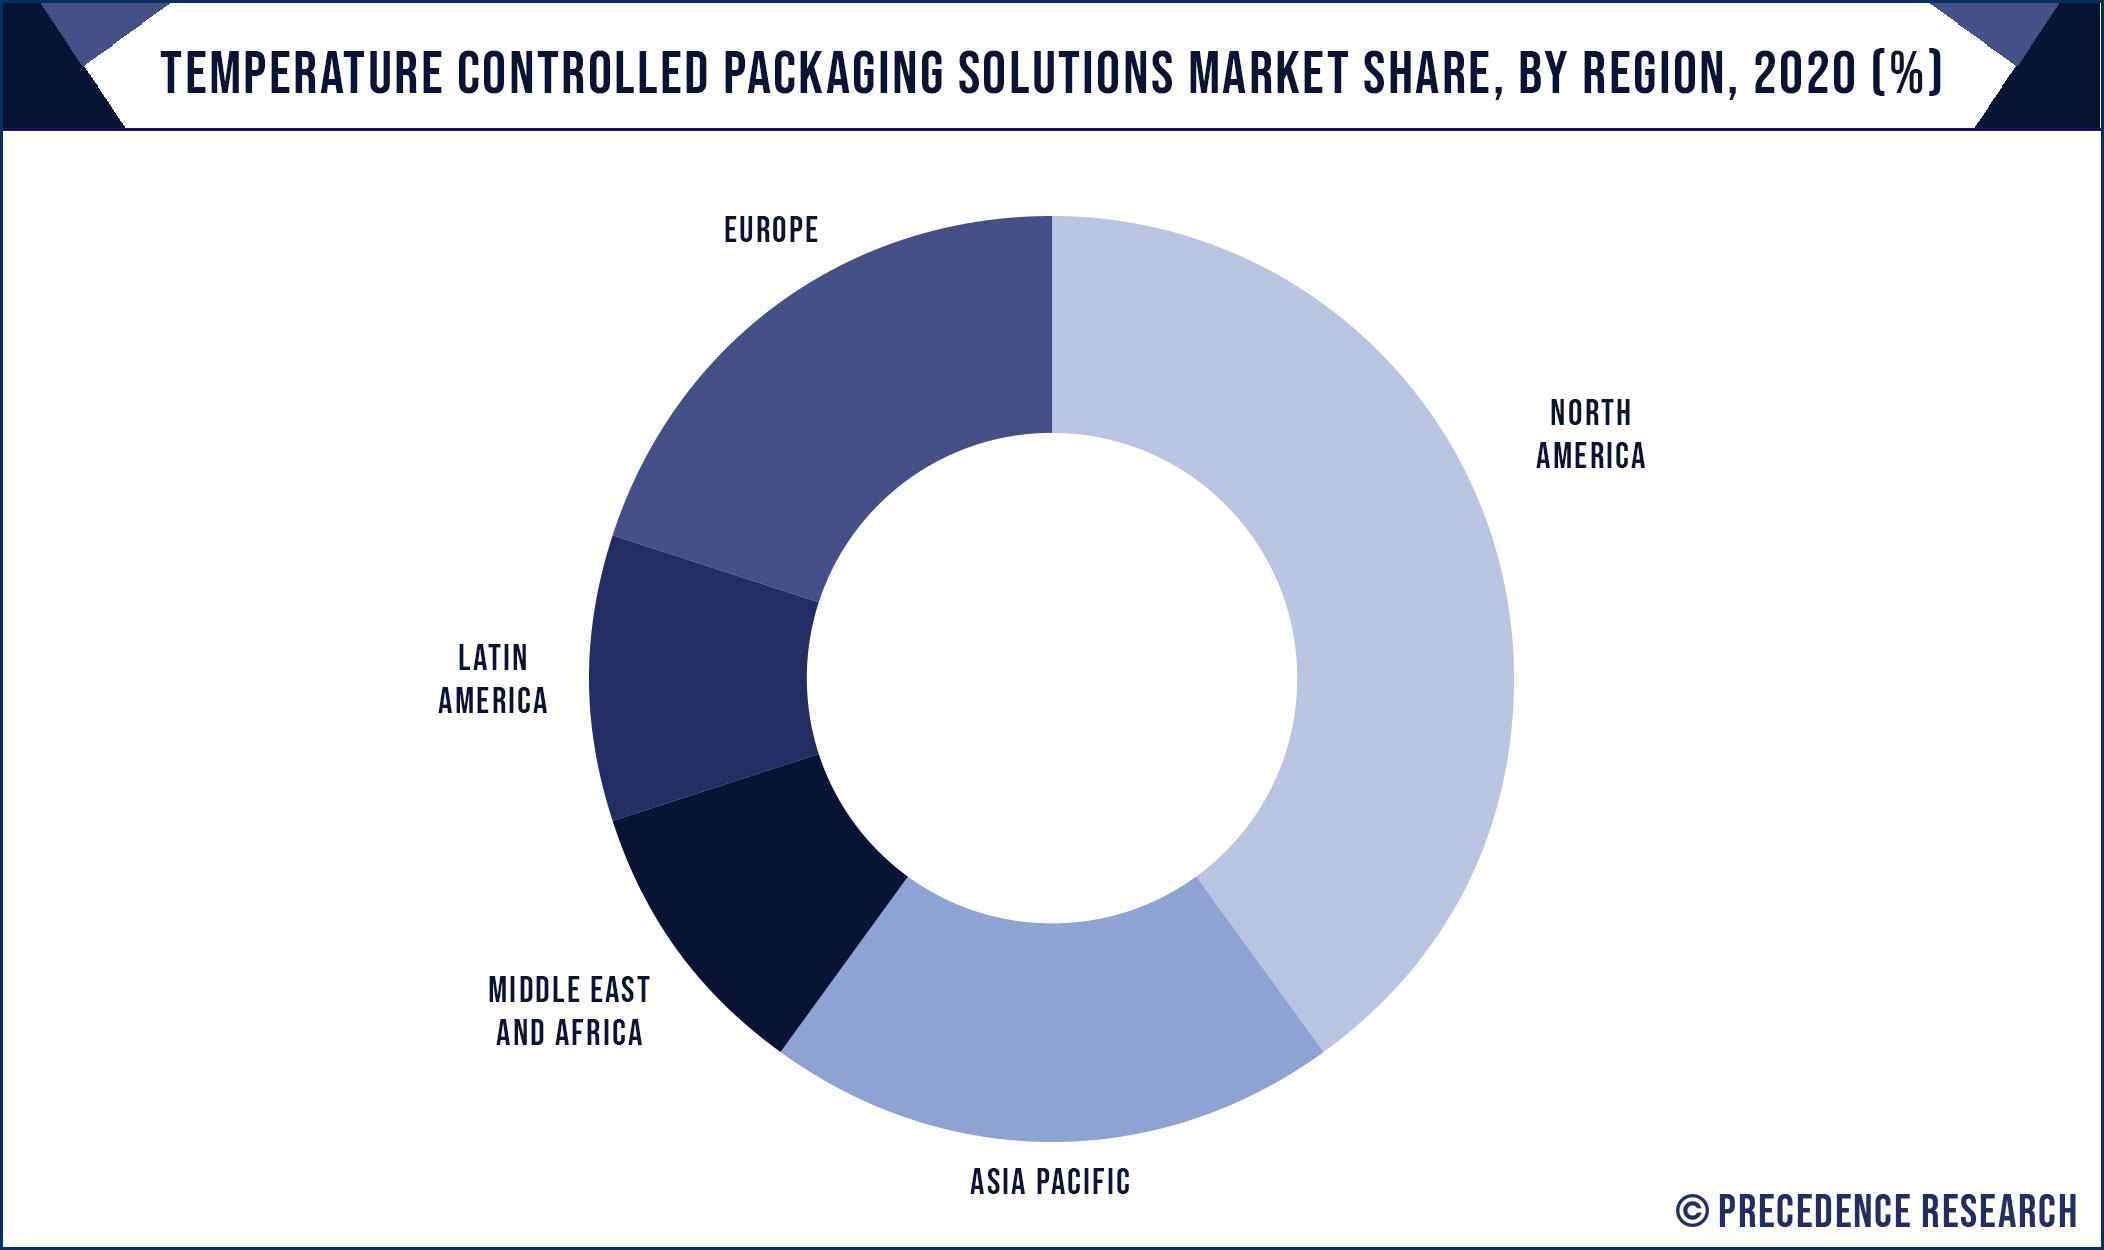 Temperature Controlled Packaging Solutions Market Share, By Region, 2020 (%)